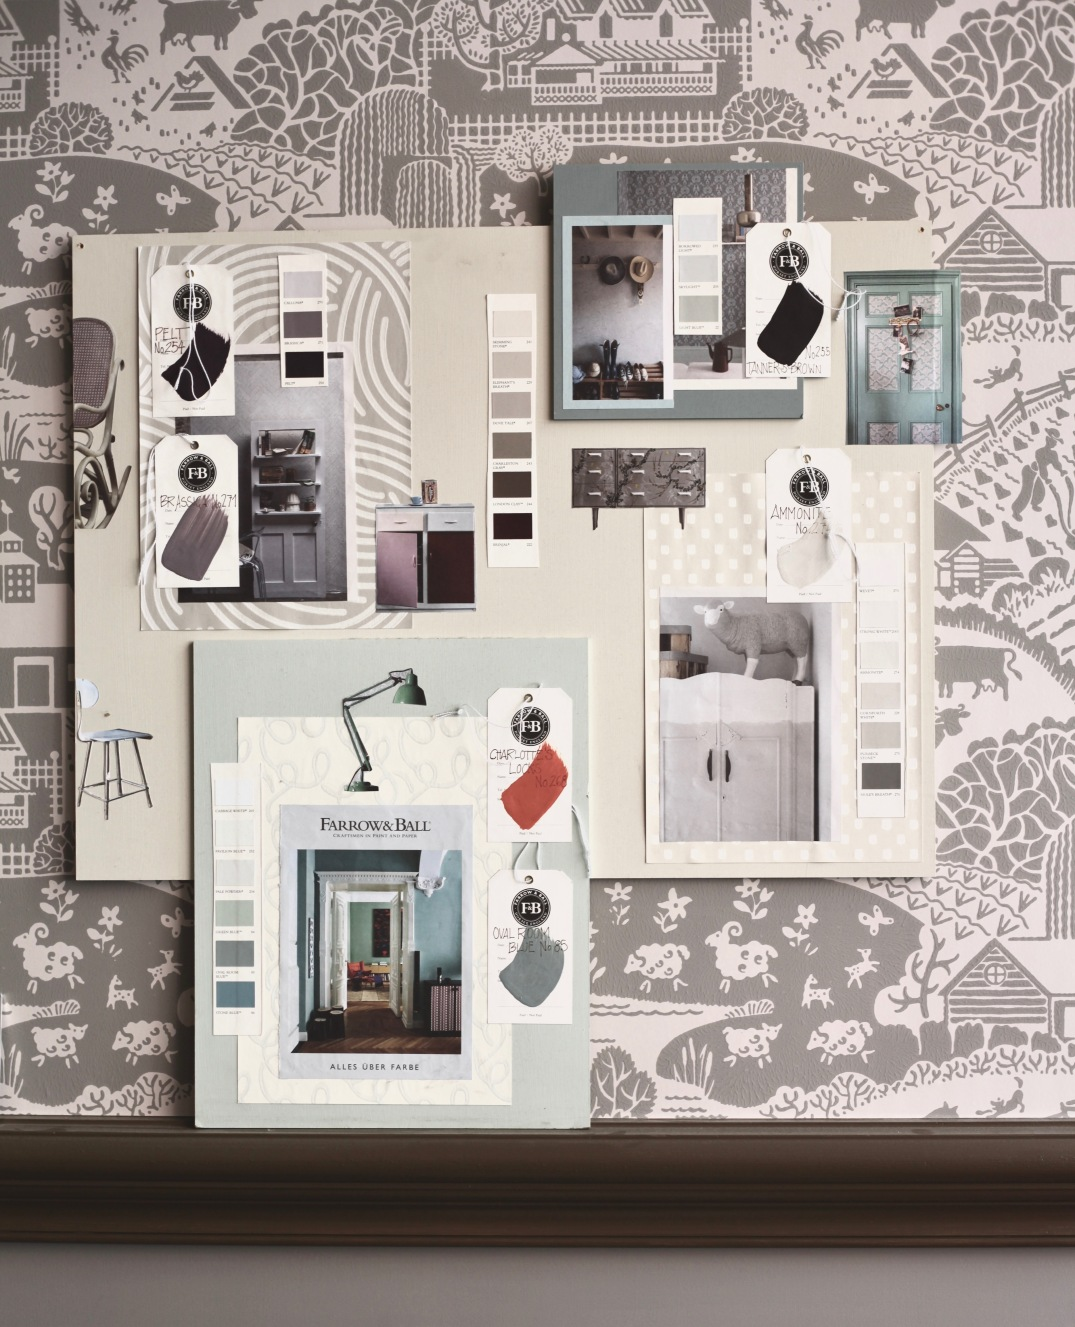 mood board example for color harmony - seen at the Farrow & Ball Showroom in Munich